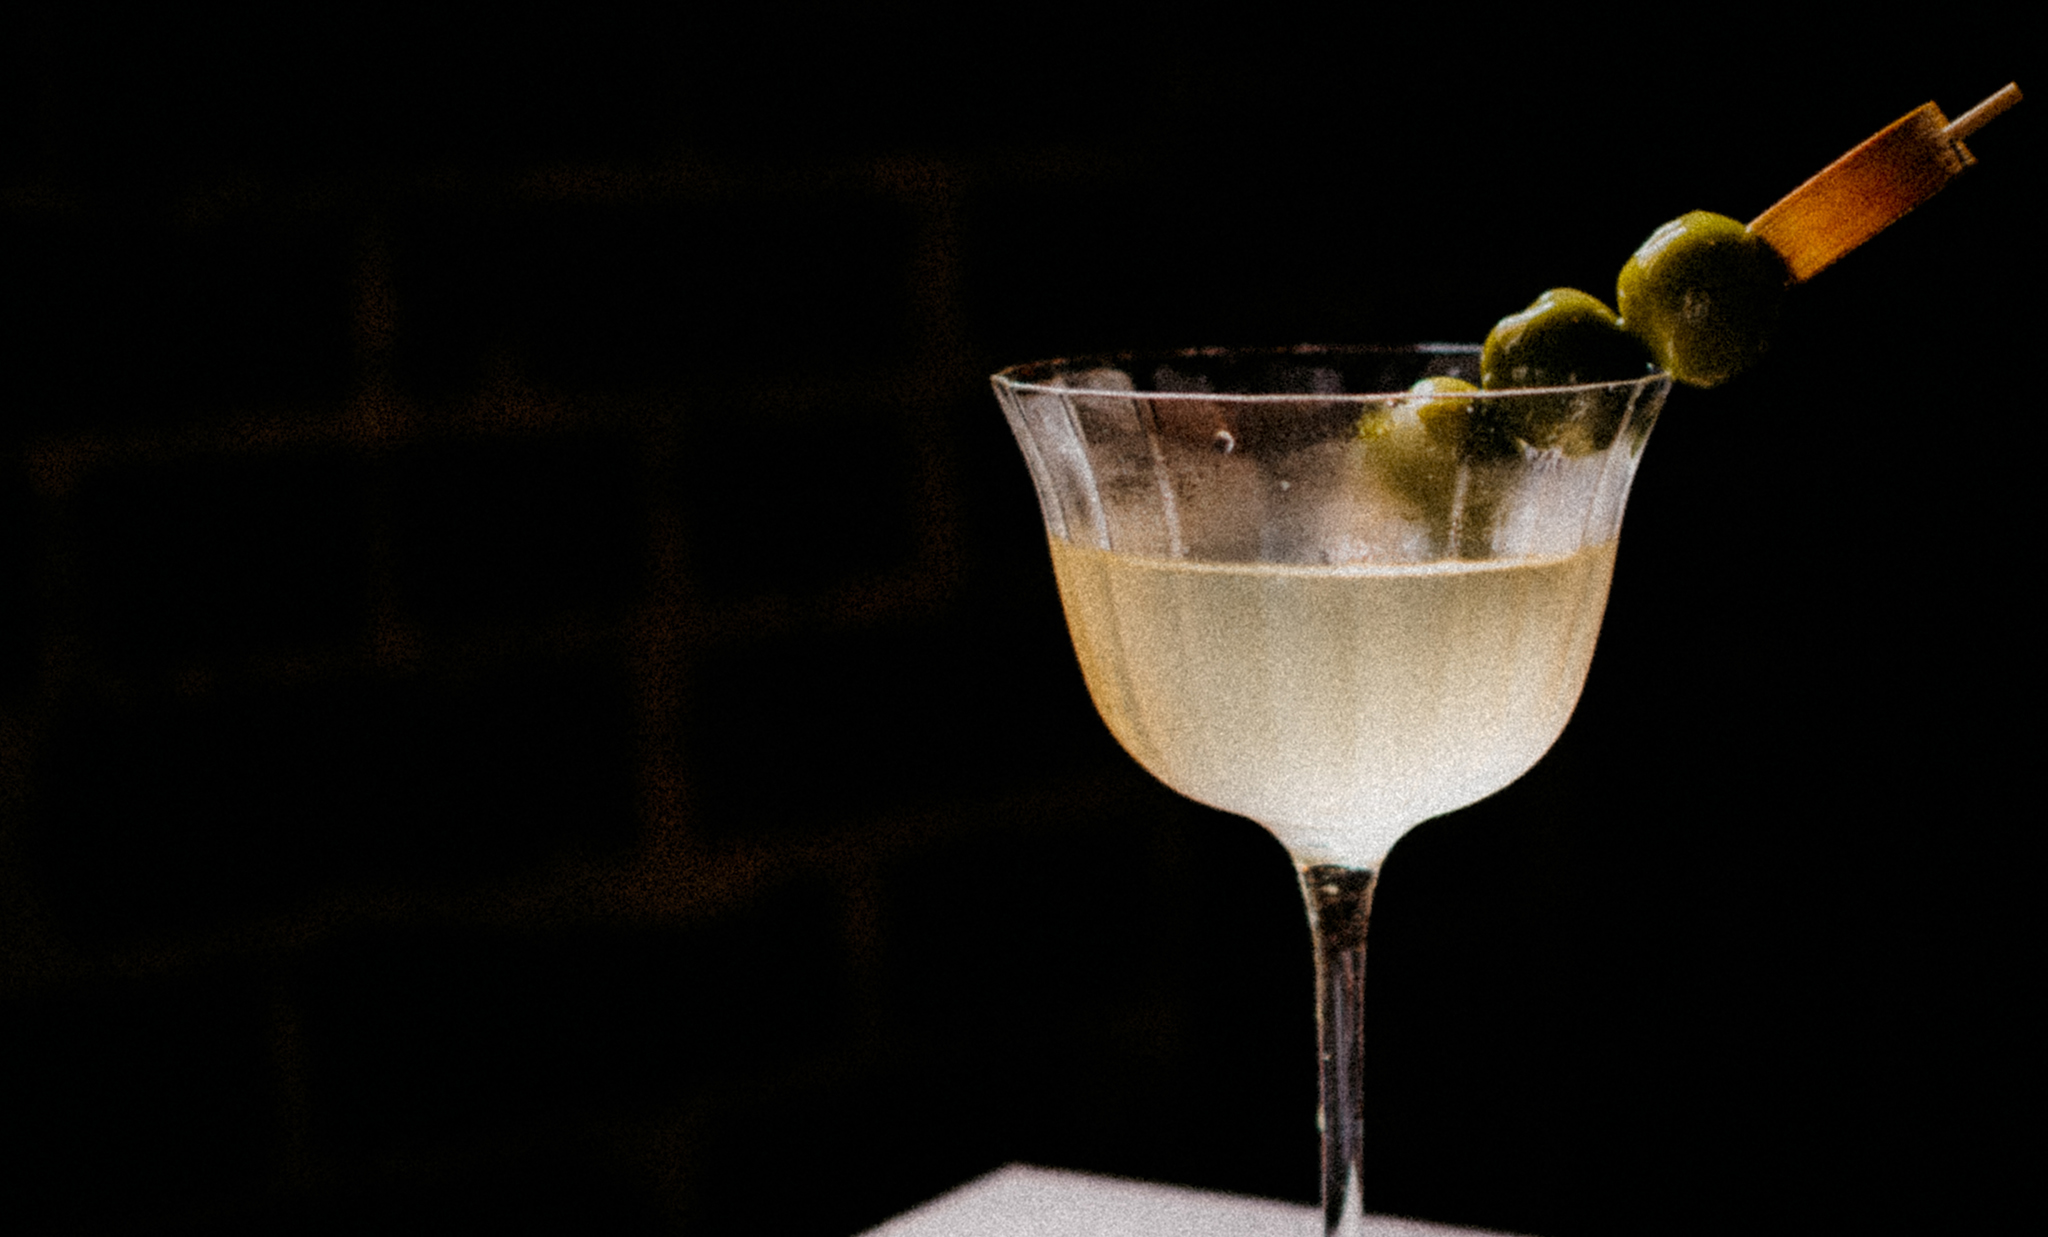 Cocktail with olives on a table with a dark background